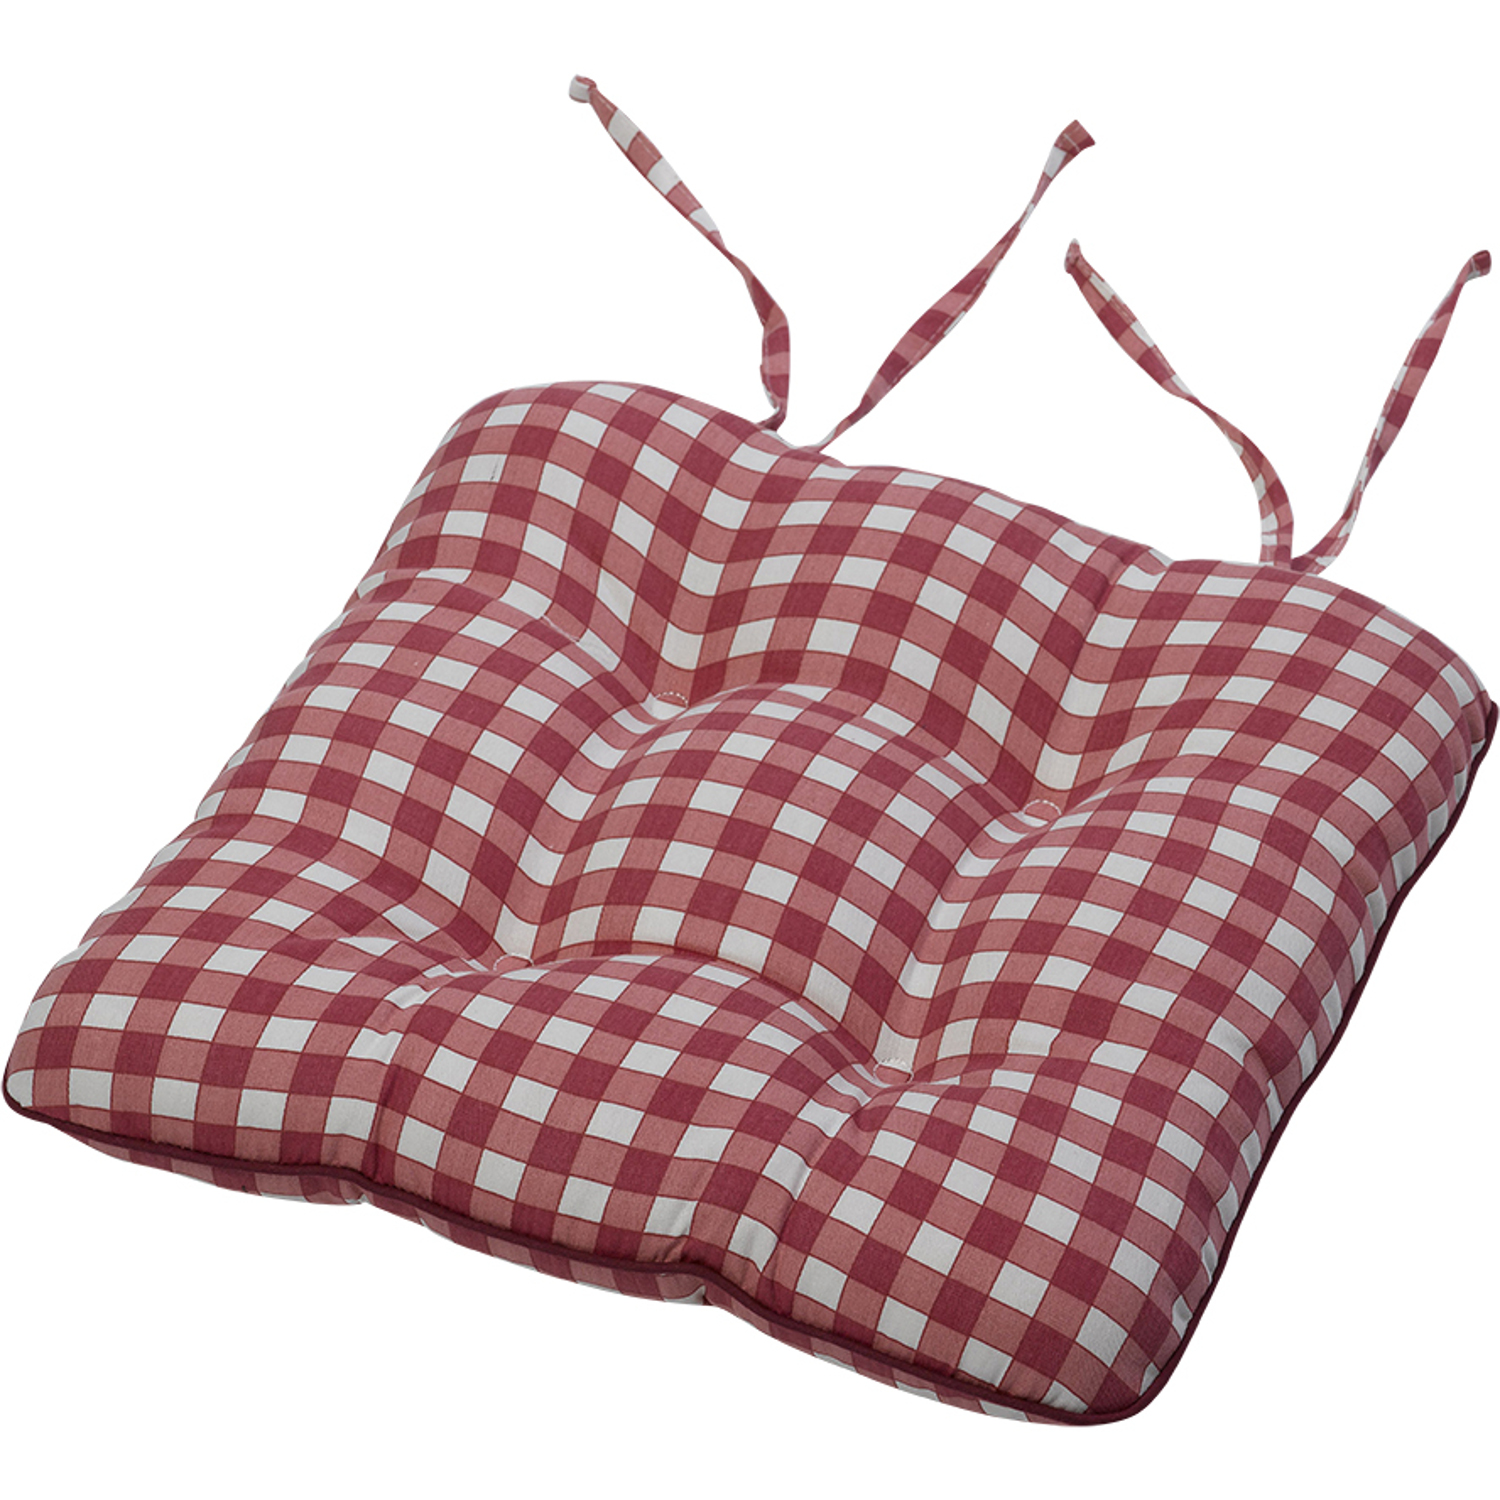 "Gingham Check Cotton Seat Pad 14"" x 15"" Kitchen Outdoor Dining"